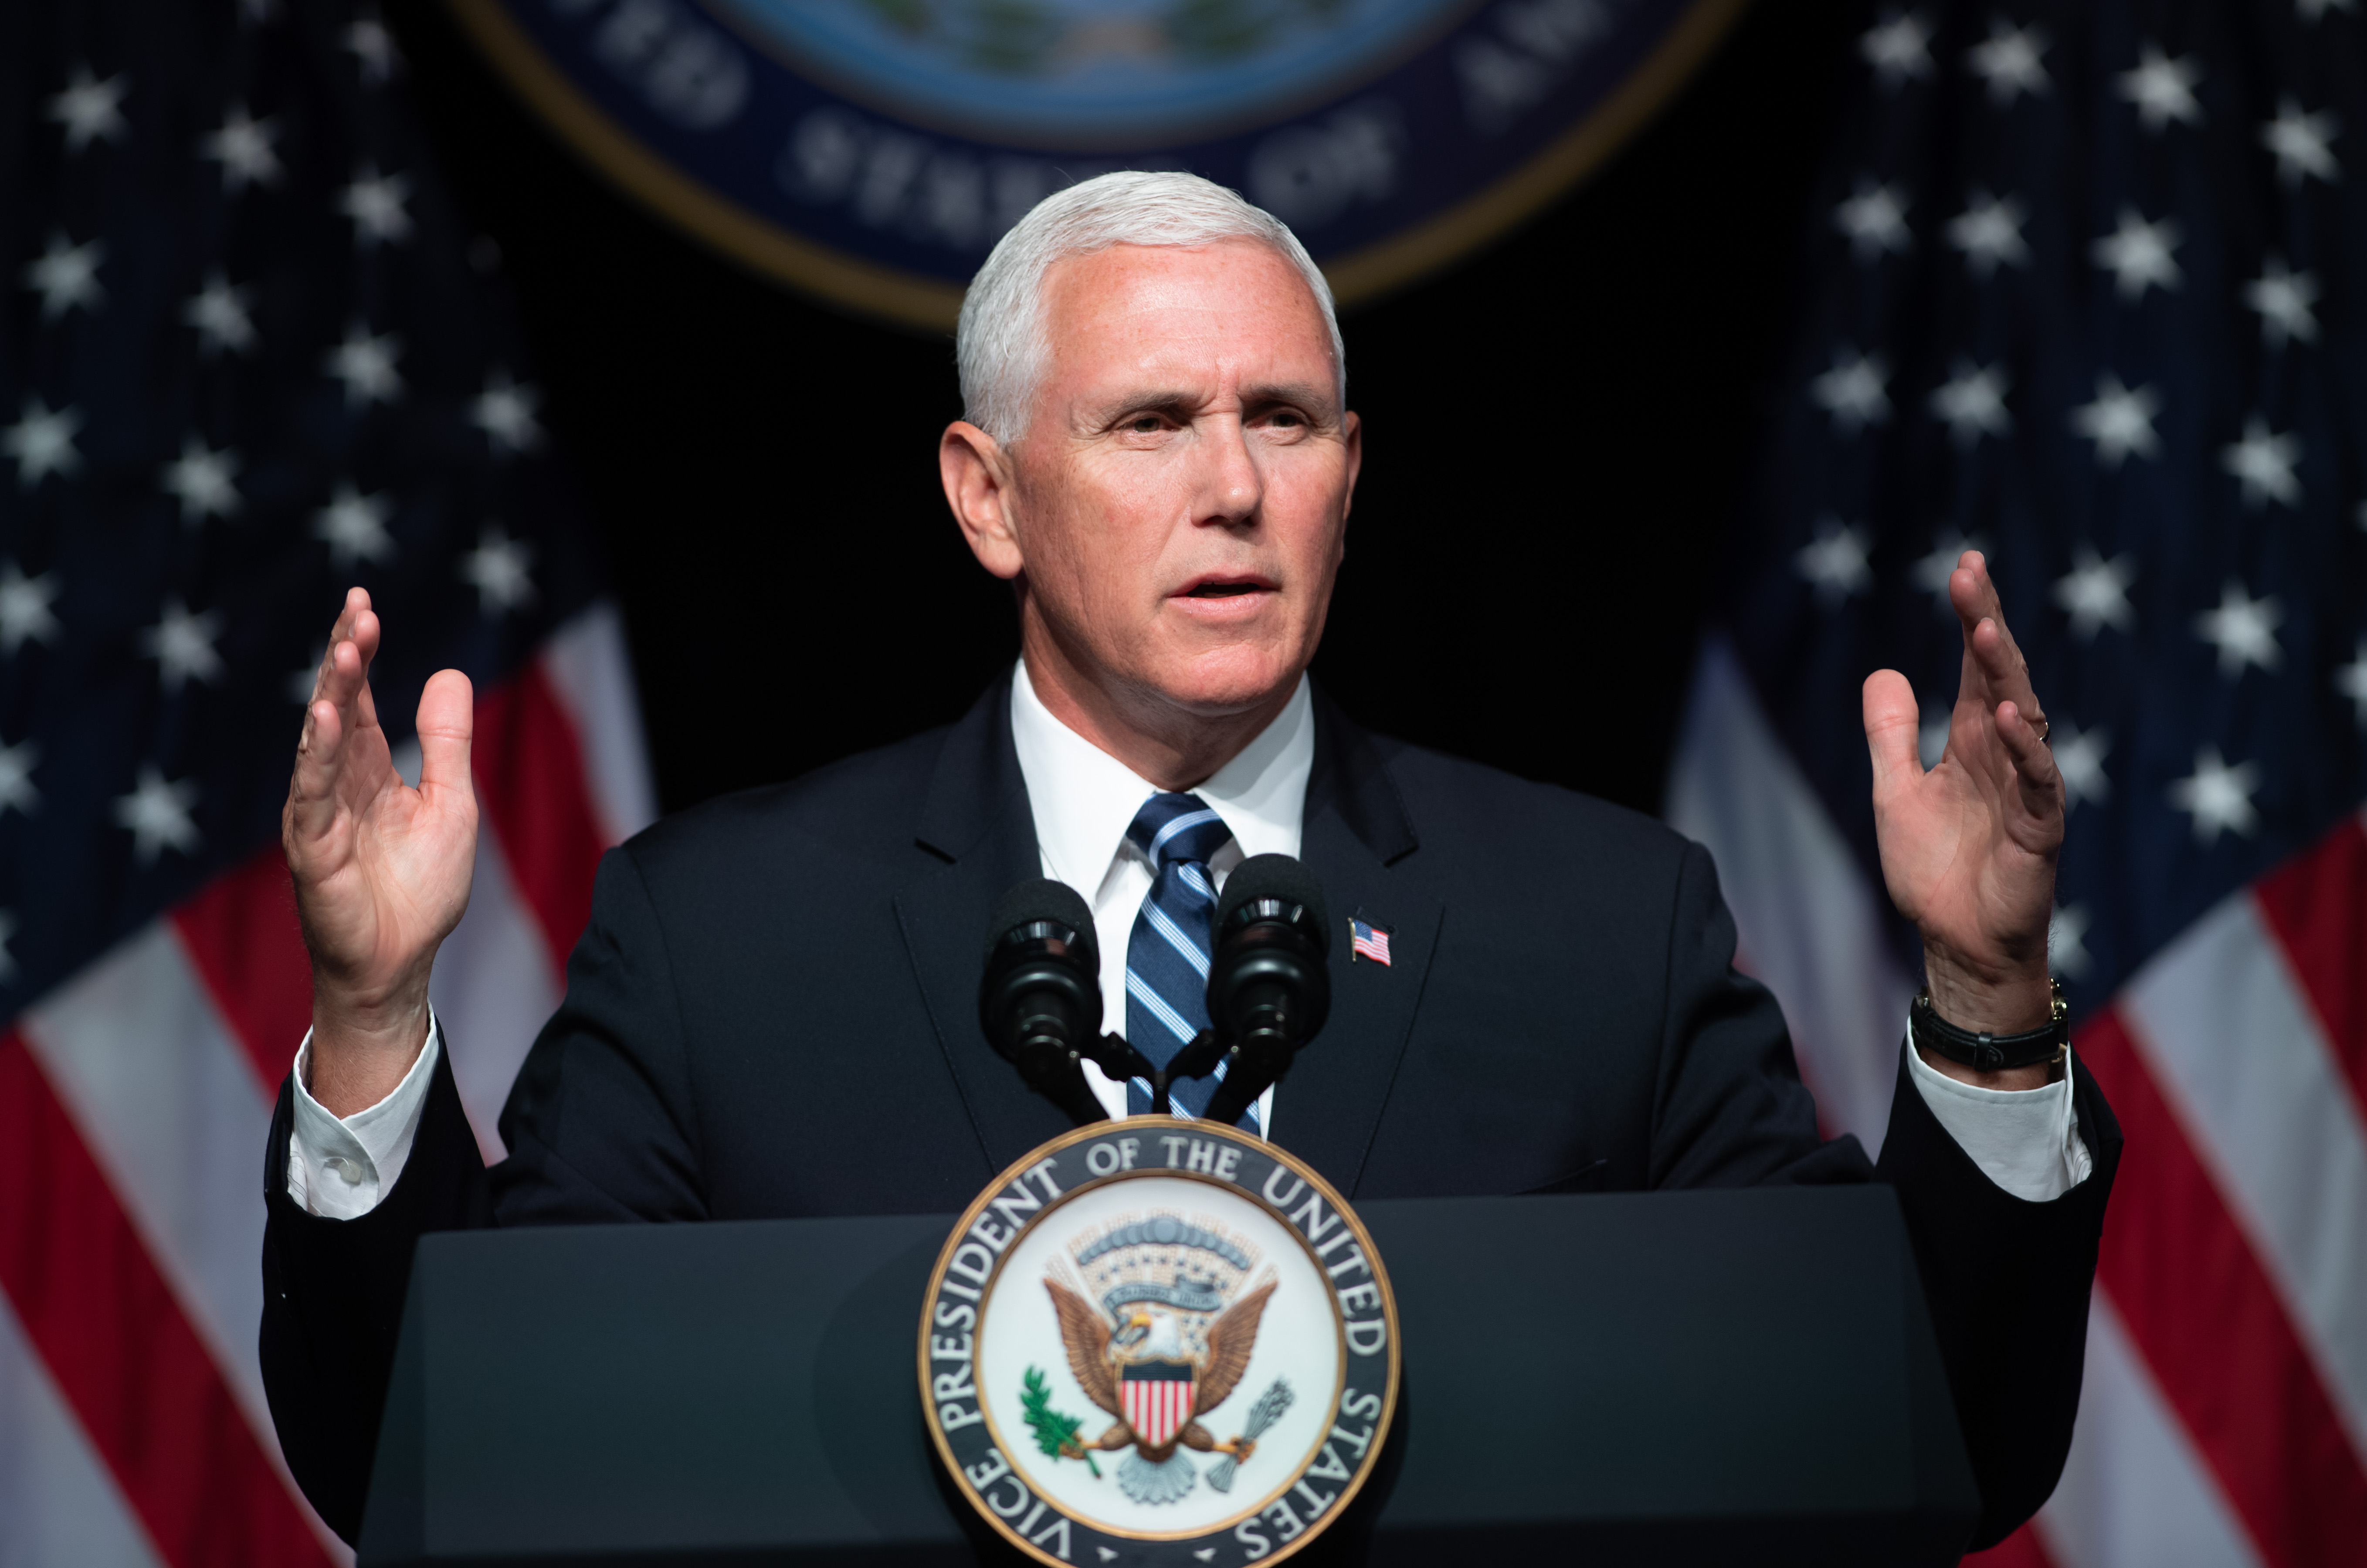 Vice President Mike Pence speaks about the creation of a new branch of the military, Space Force, at the Pentagon in Washington, D.C., on Aug. 9, 2018. (Saul Loeb/AFP/Getty Images)